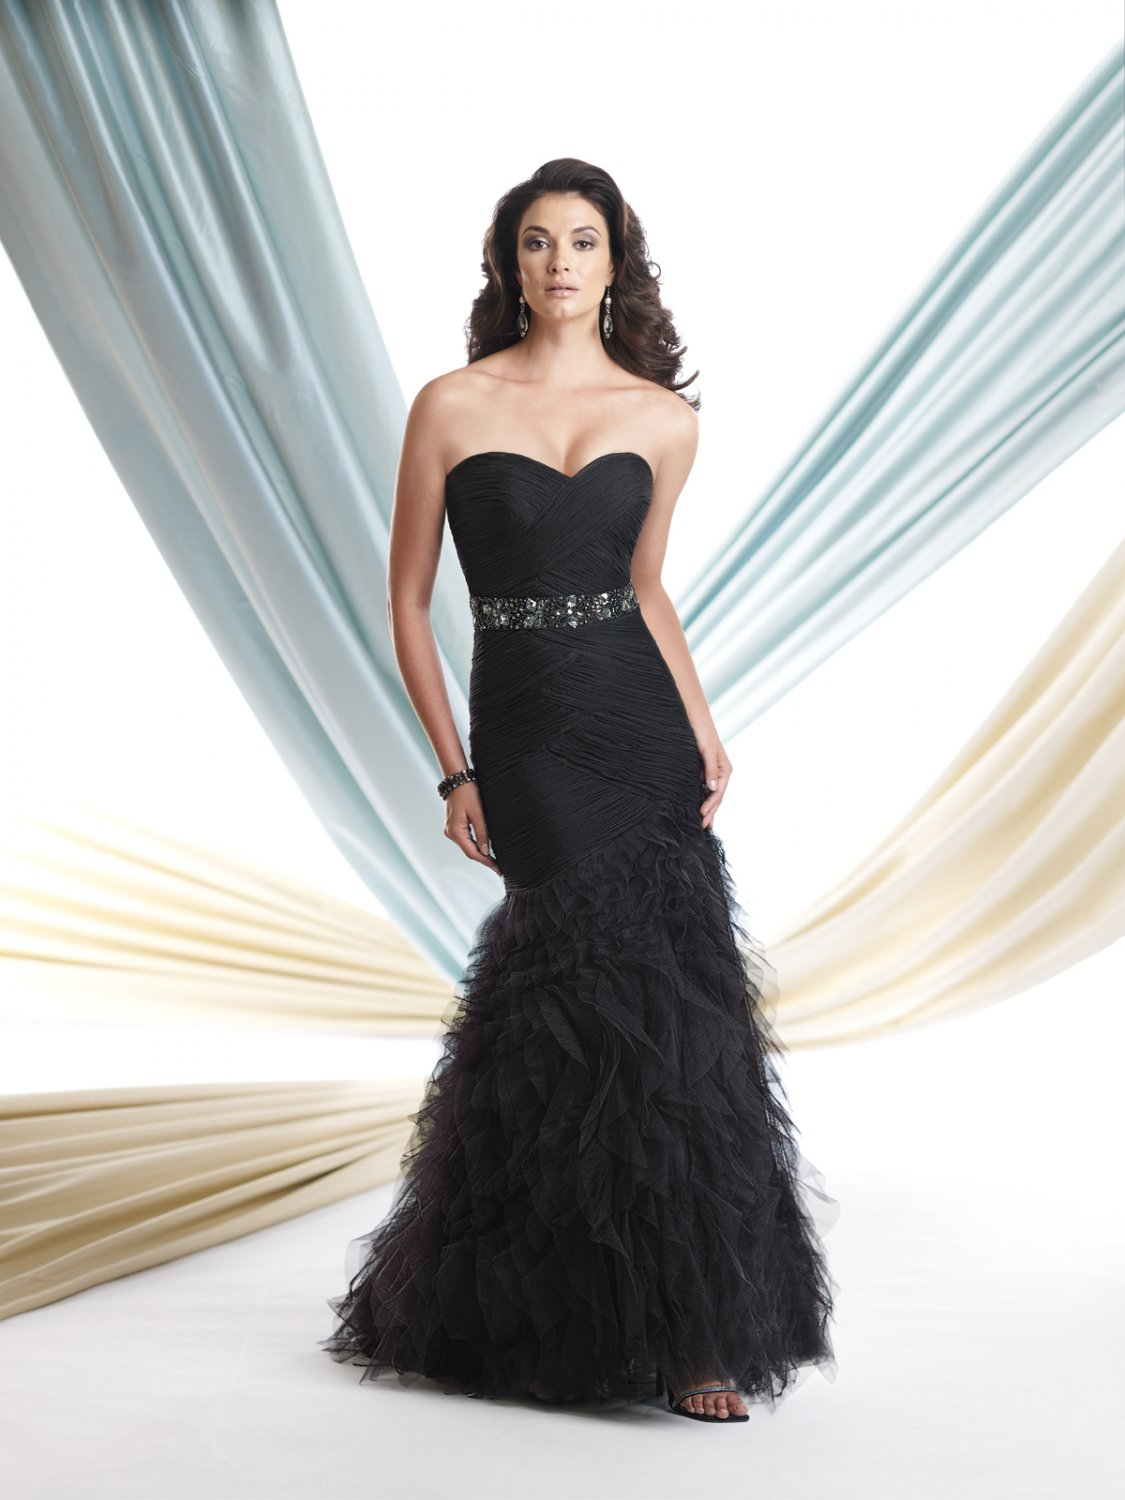 x - #JL113913 - Black Strapless Formal Dresses